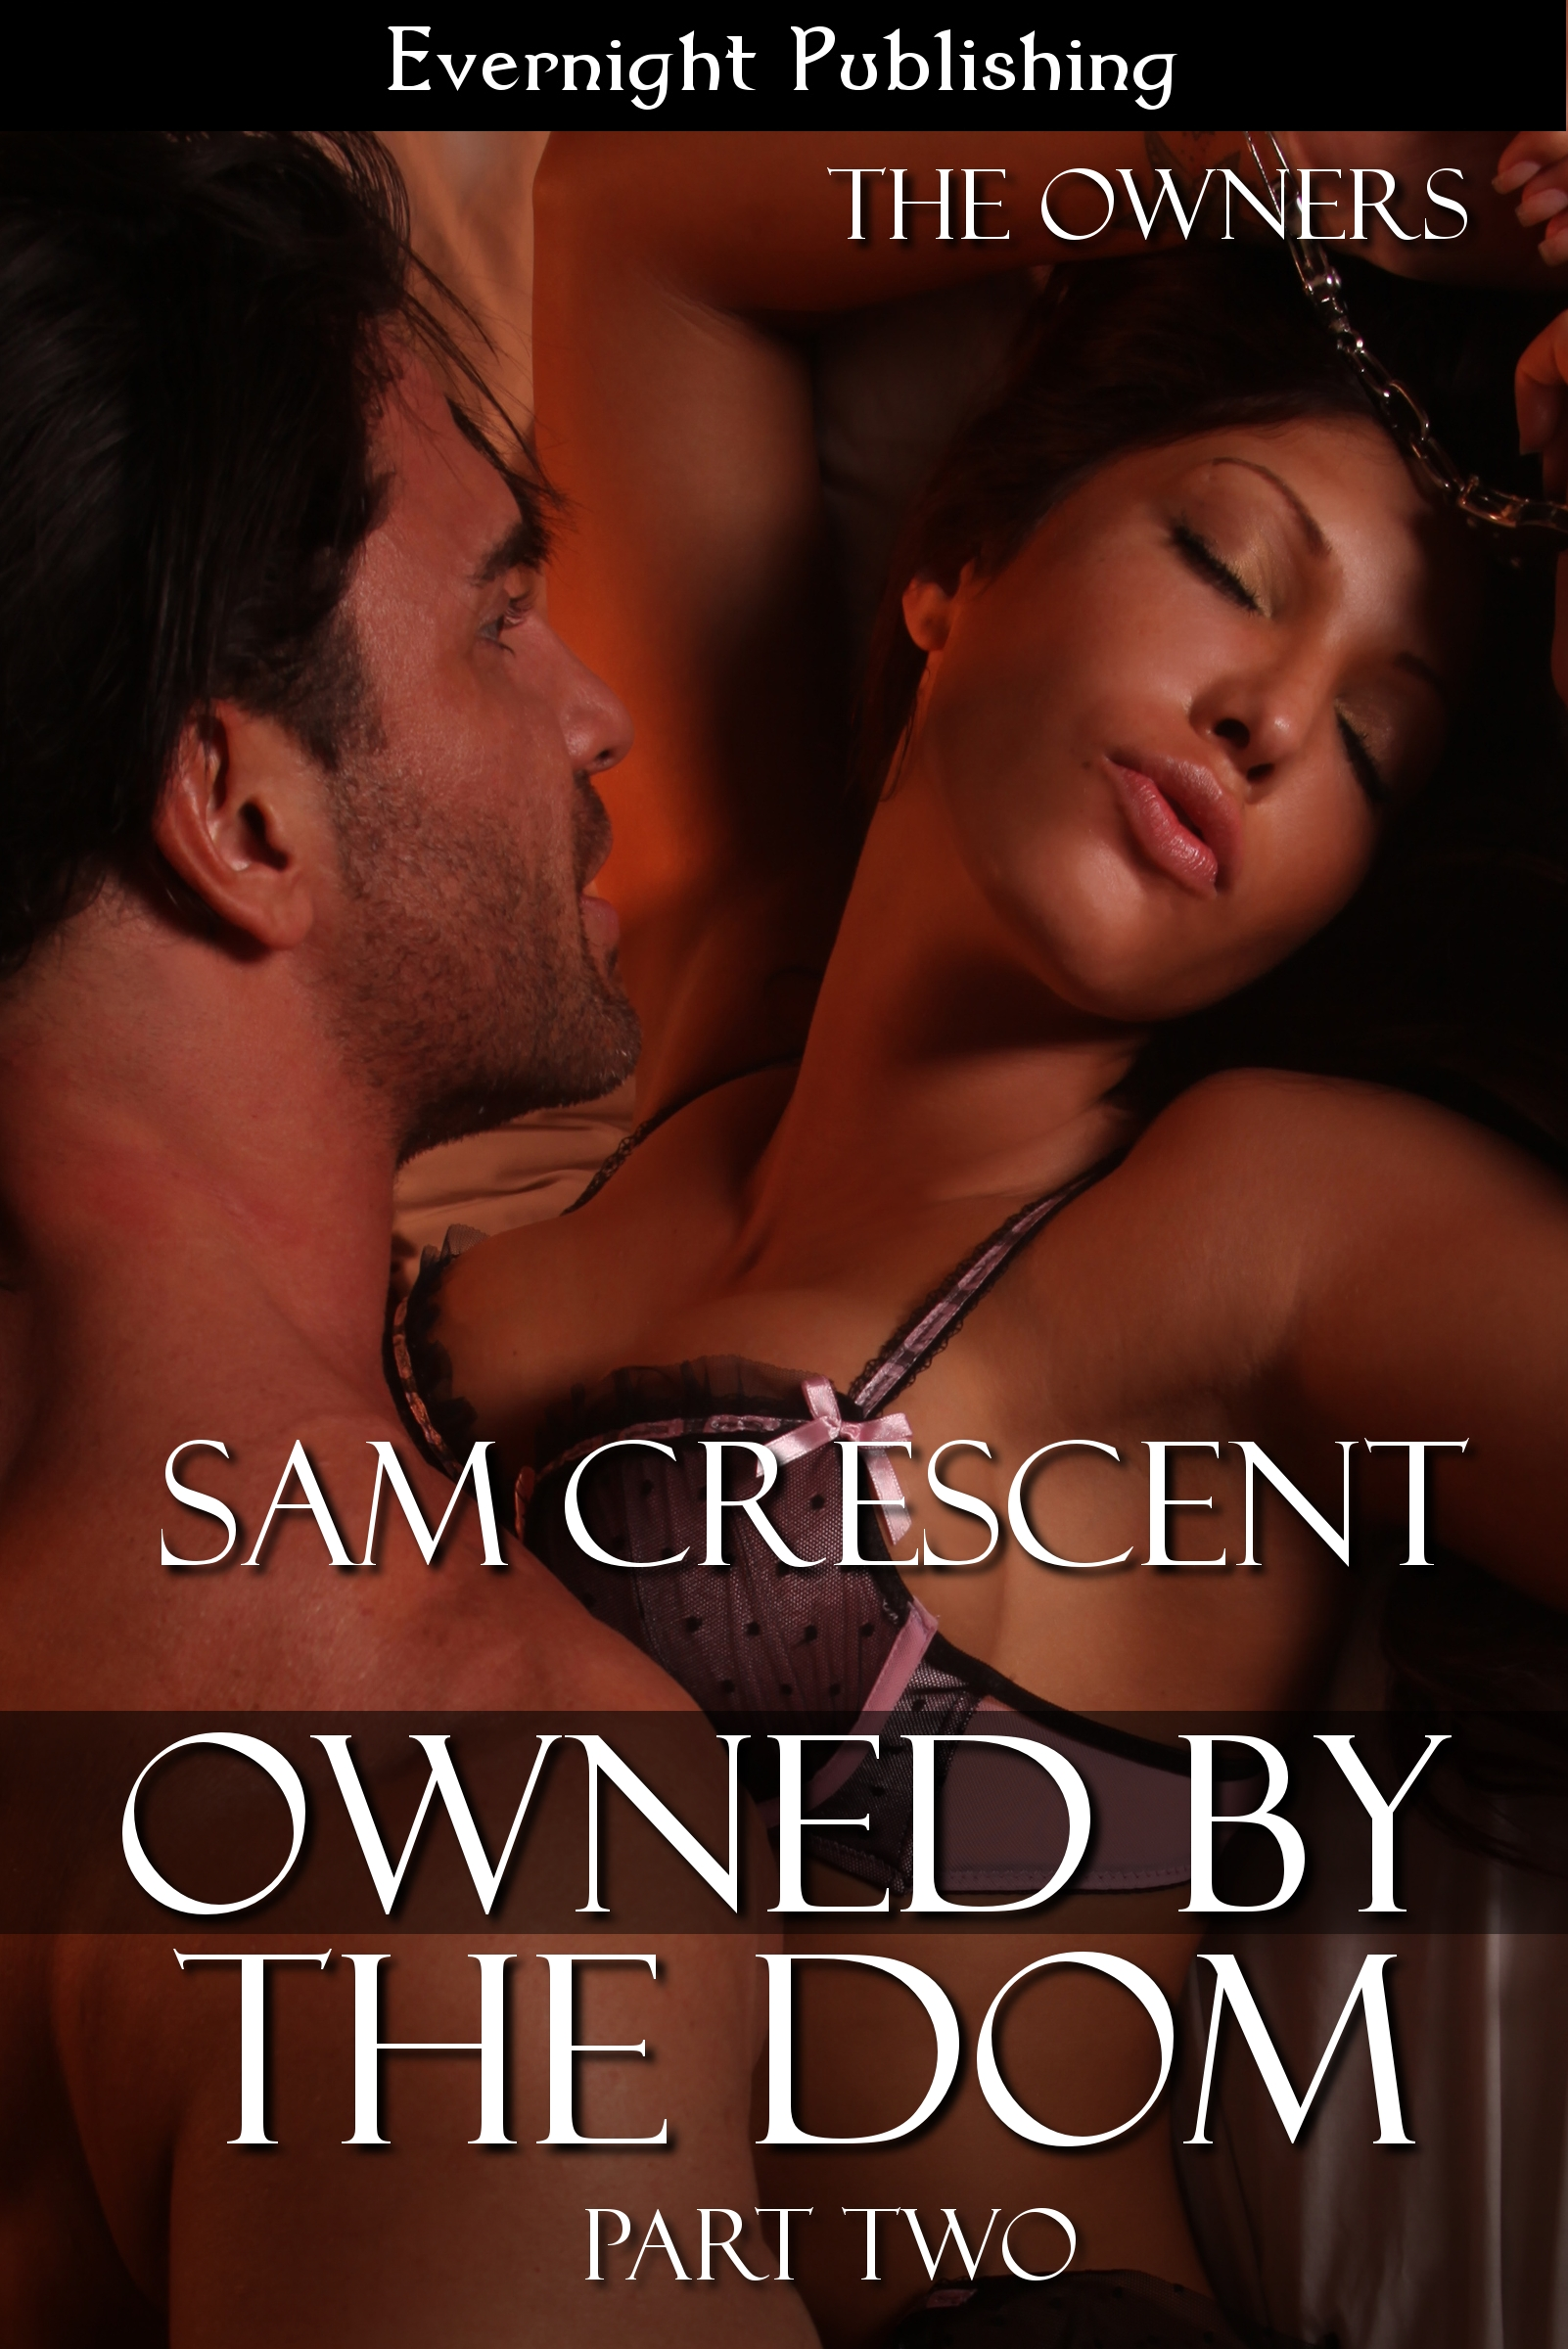 Sam Crescent - Owned by the Dom: Part Two